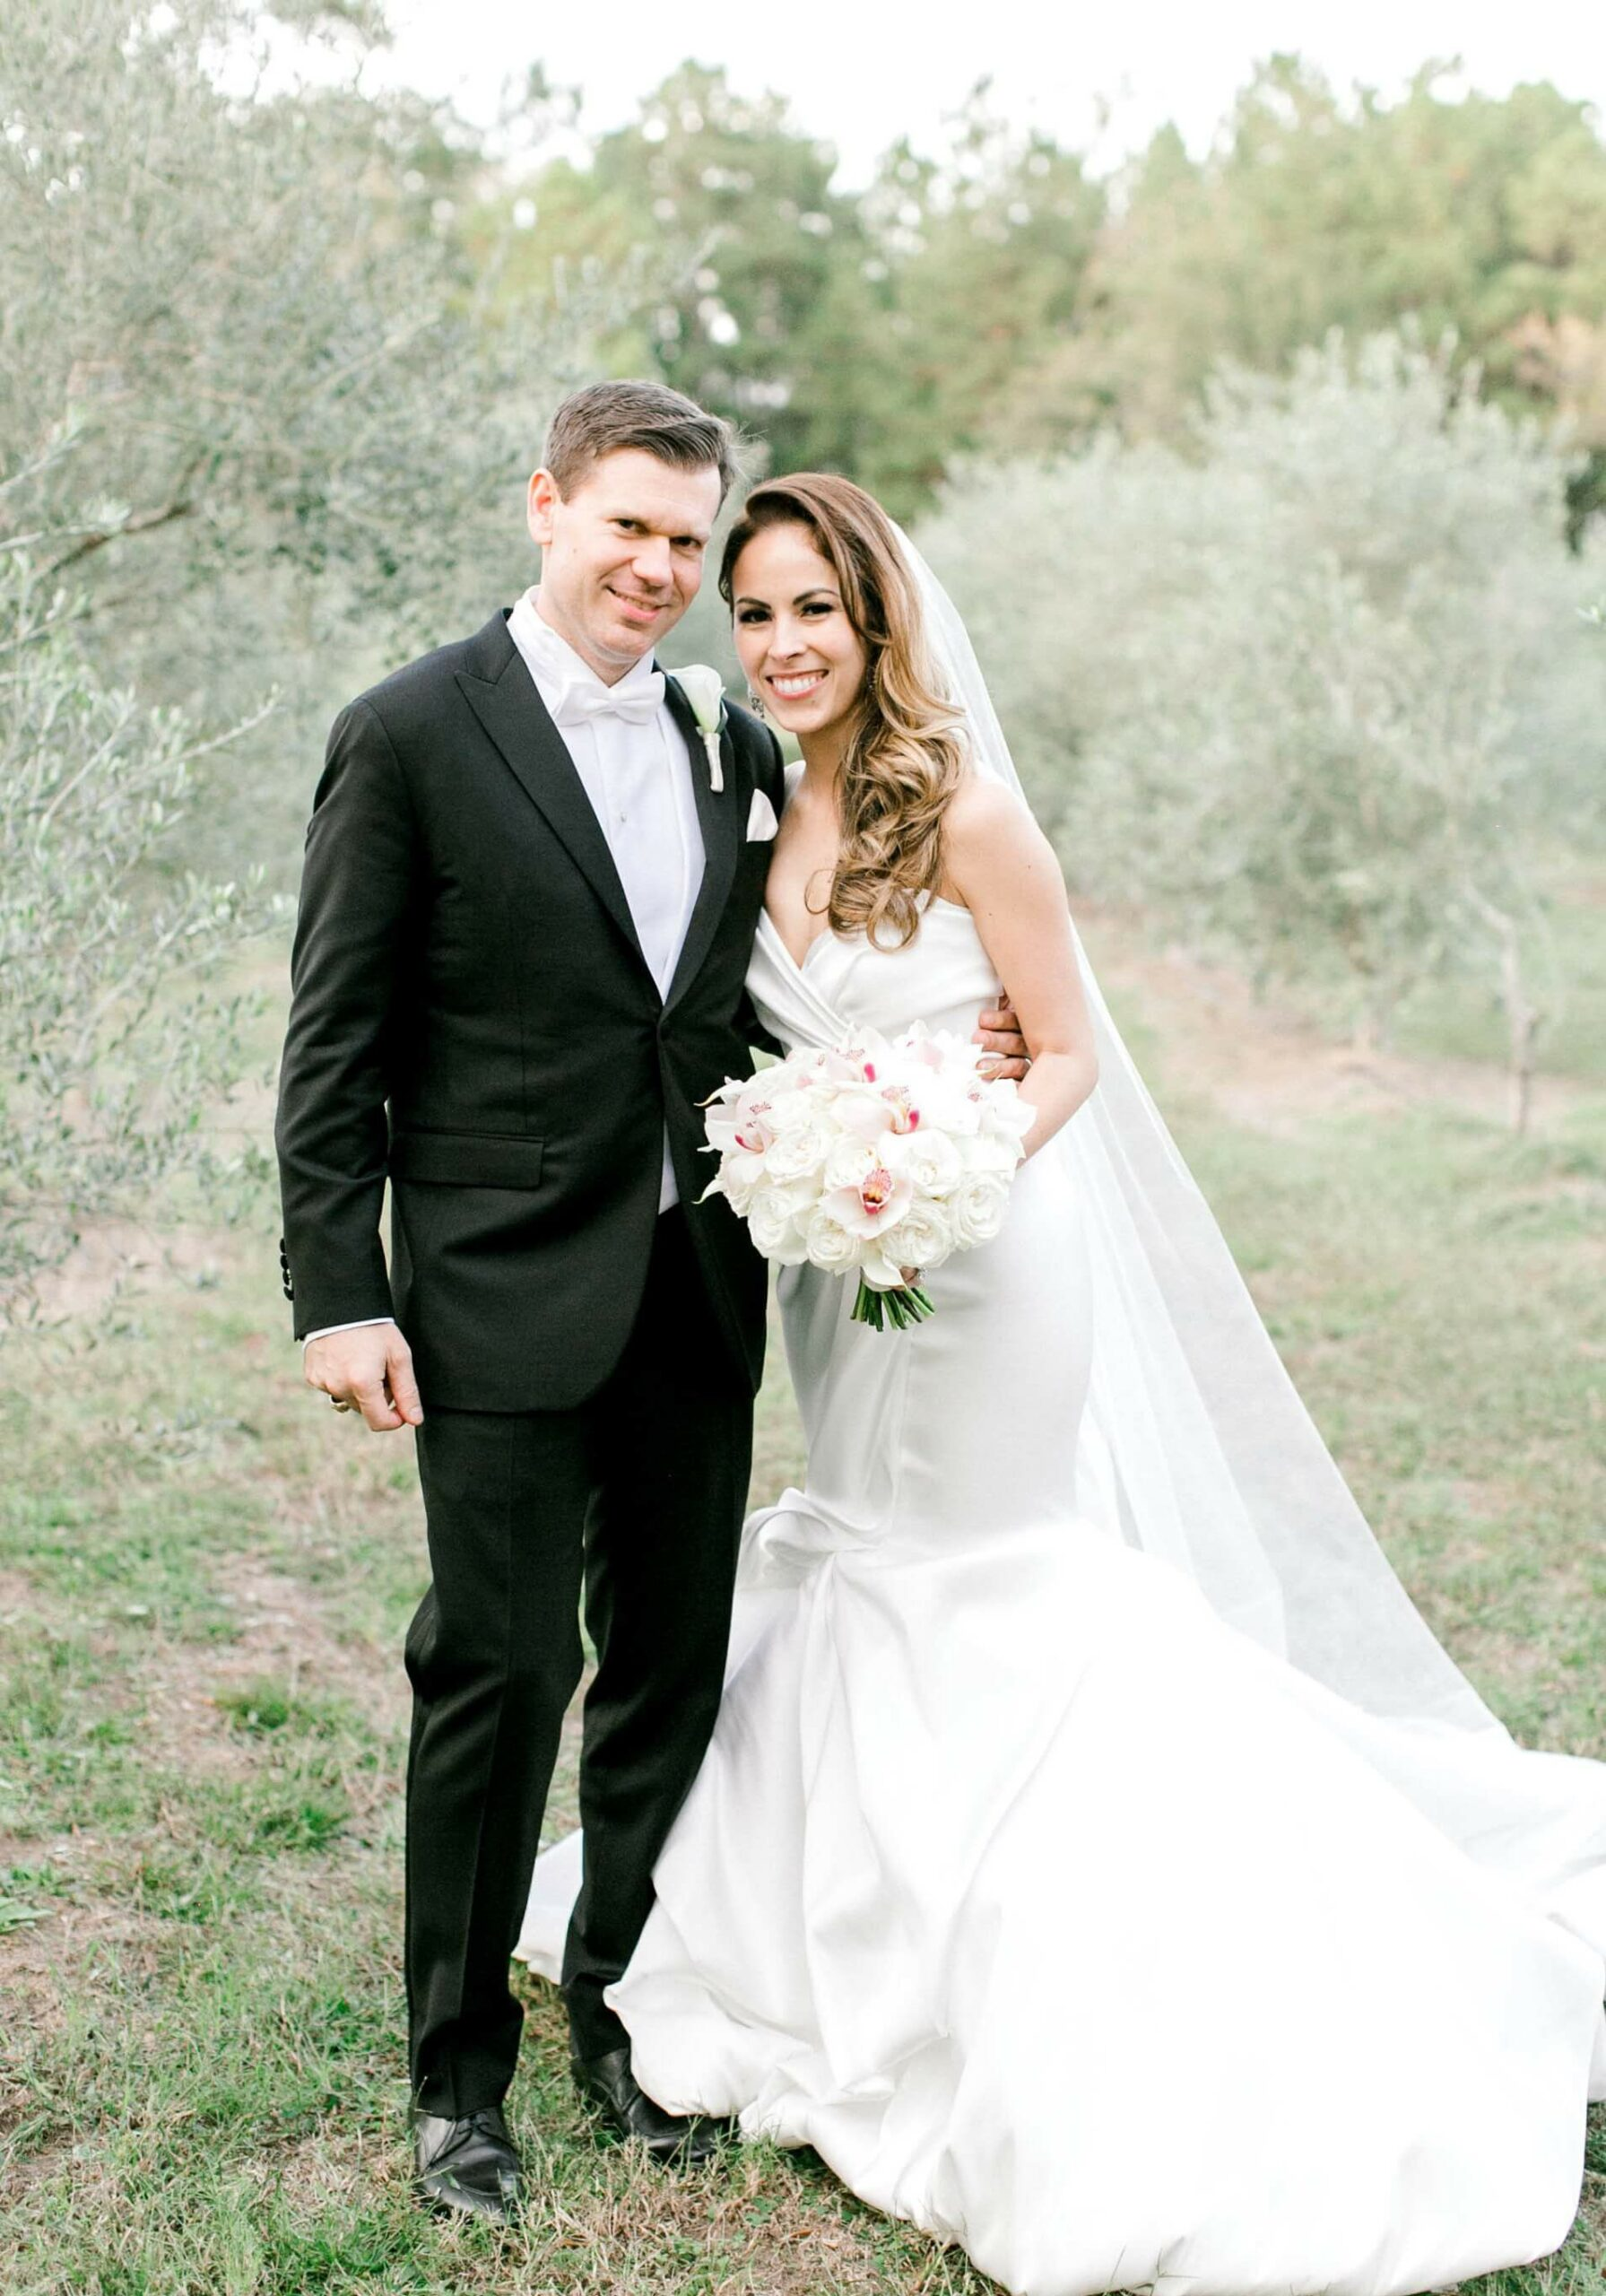 Newlyweds in olive tree orchard after wedding ceremony at The Annex wedding venue